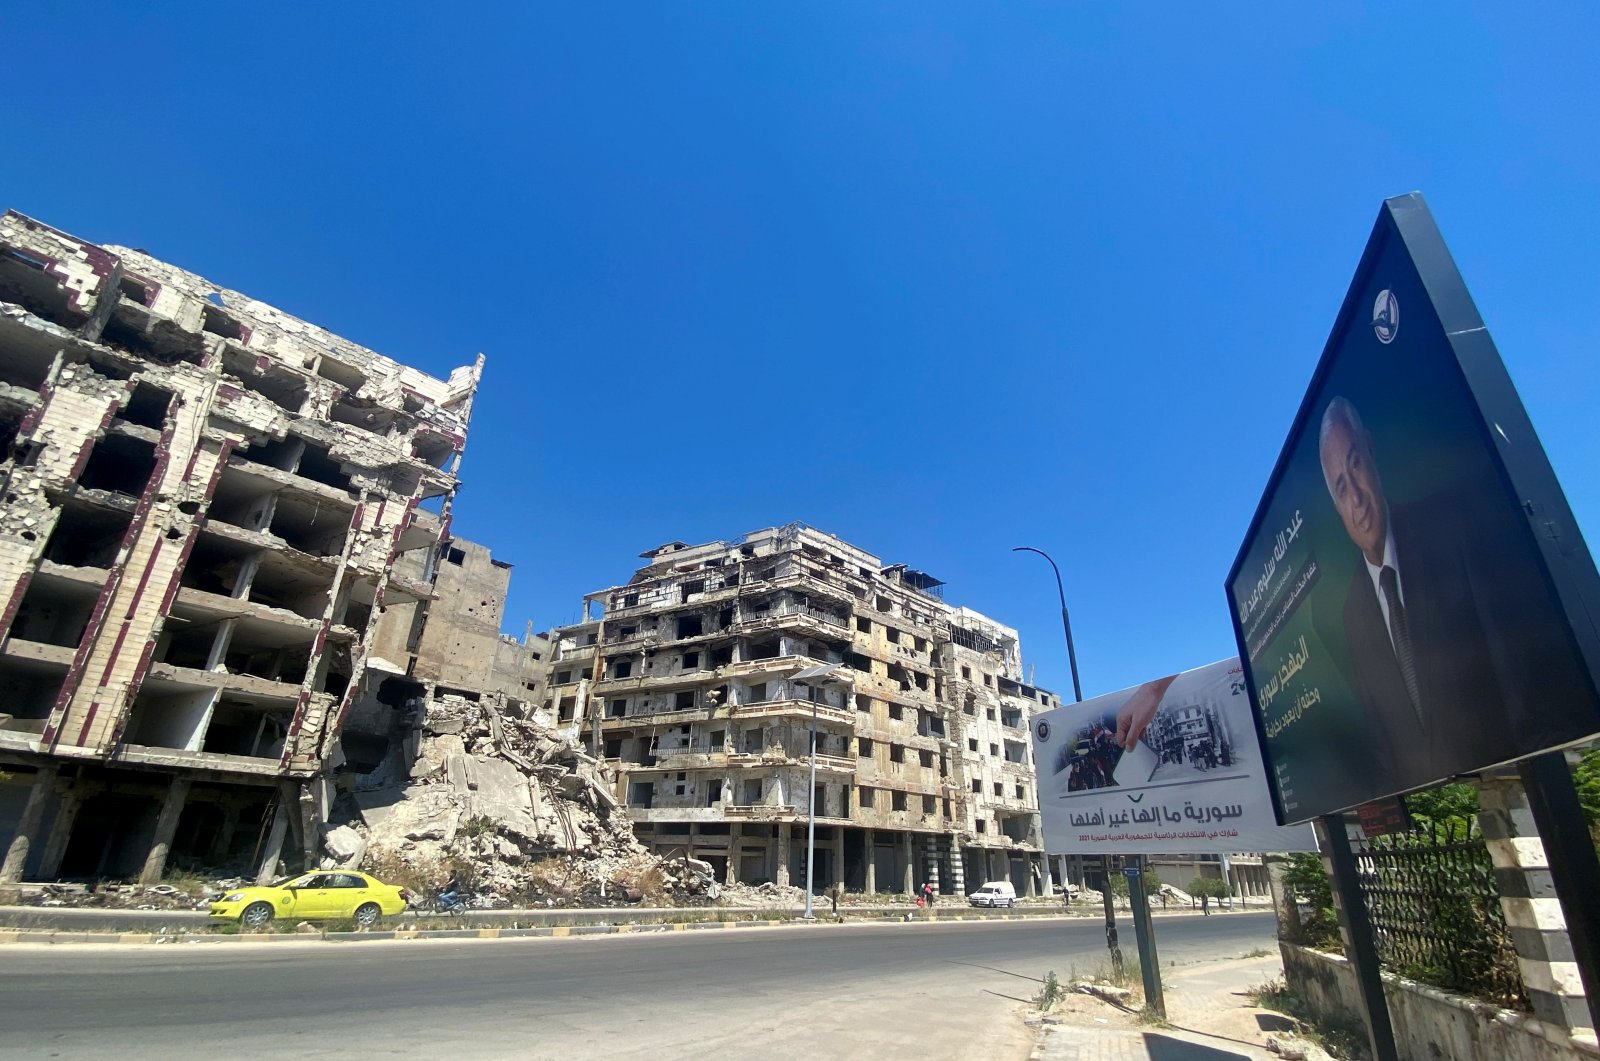 A view shows an election campaign billboard of presidential candidate Abdullah Salloum, near damaged buildings in Homs, Syria, May 23, 2021. (REUTERS)